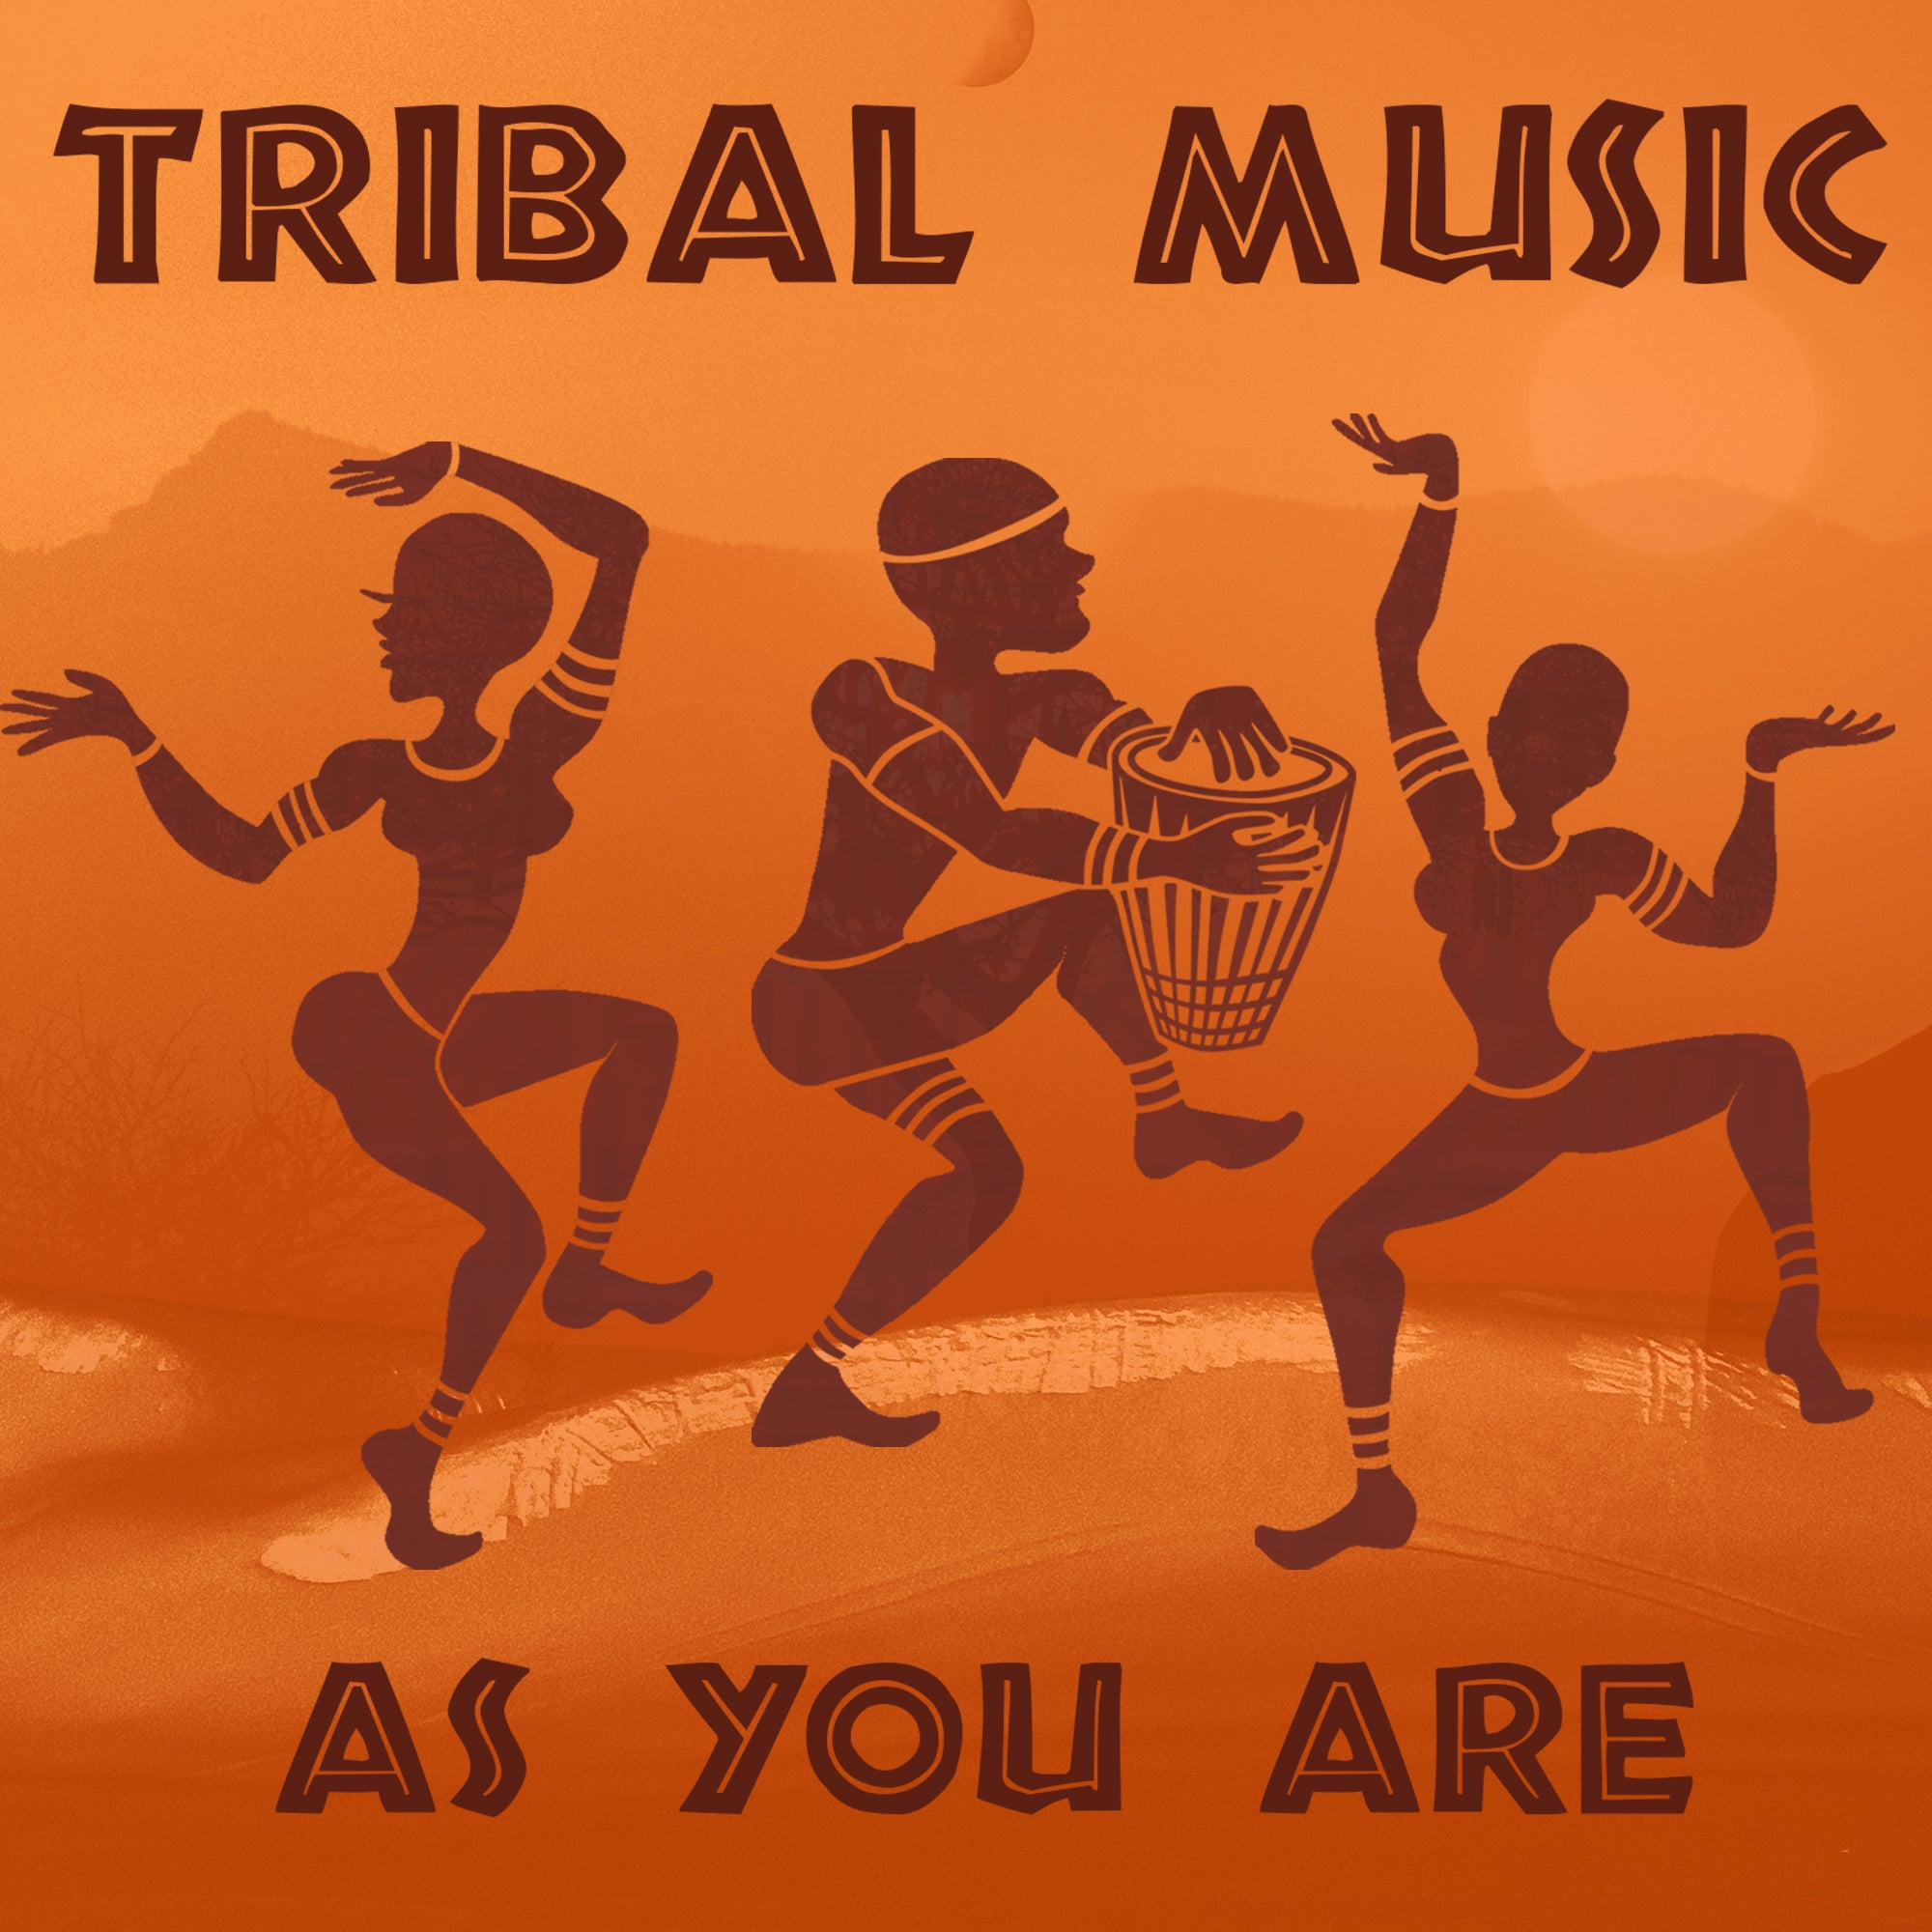 TRIBAL MUSIC - AS YOU ARE